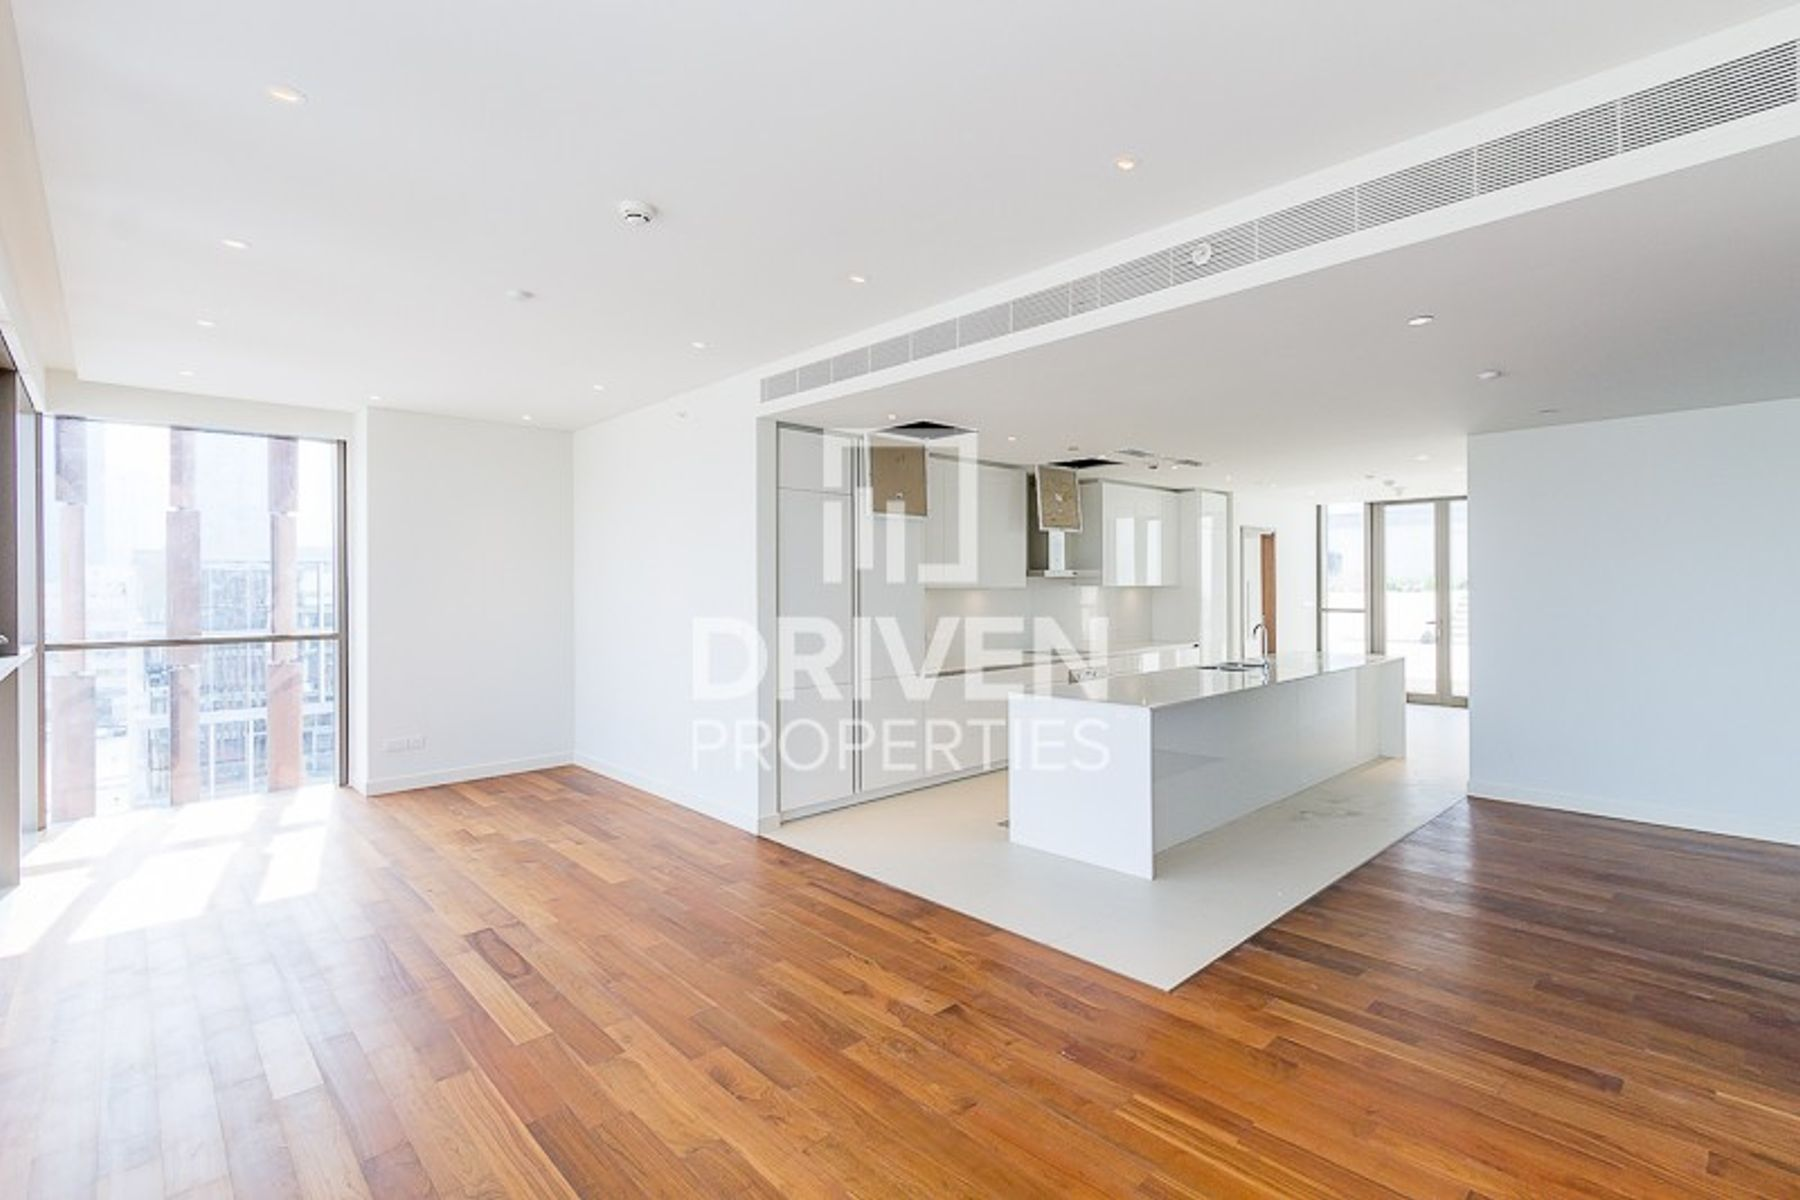 Speechless Penthouse, 4 Bed plus Maid's room